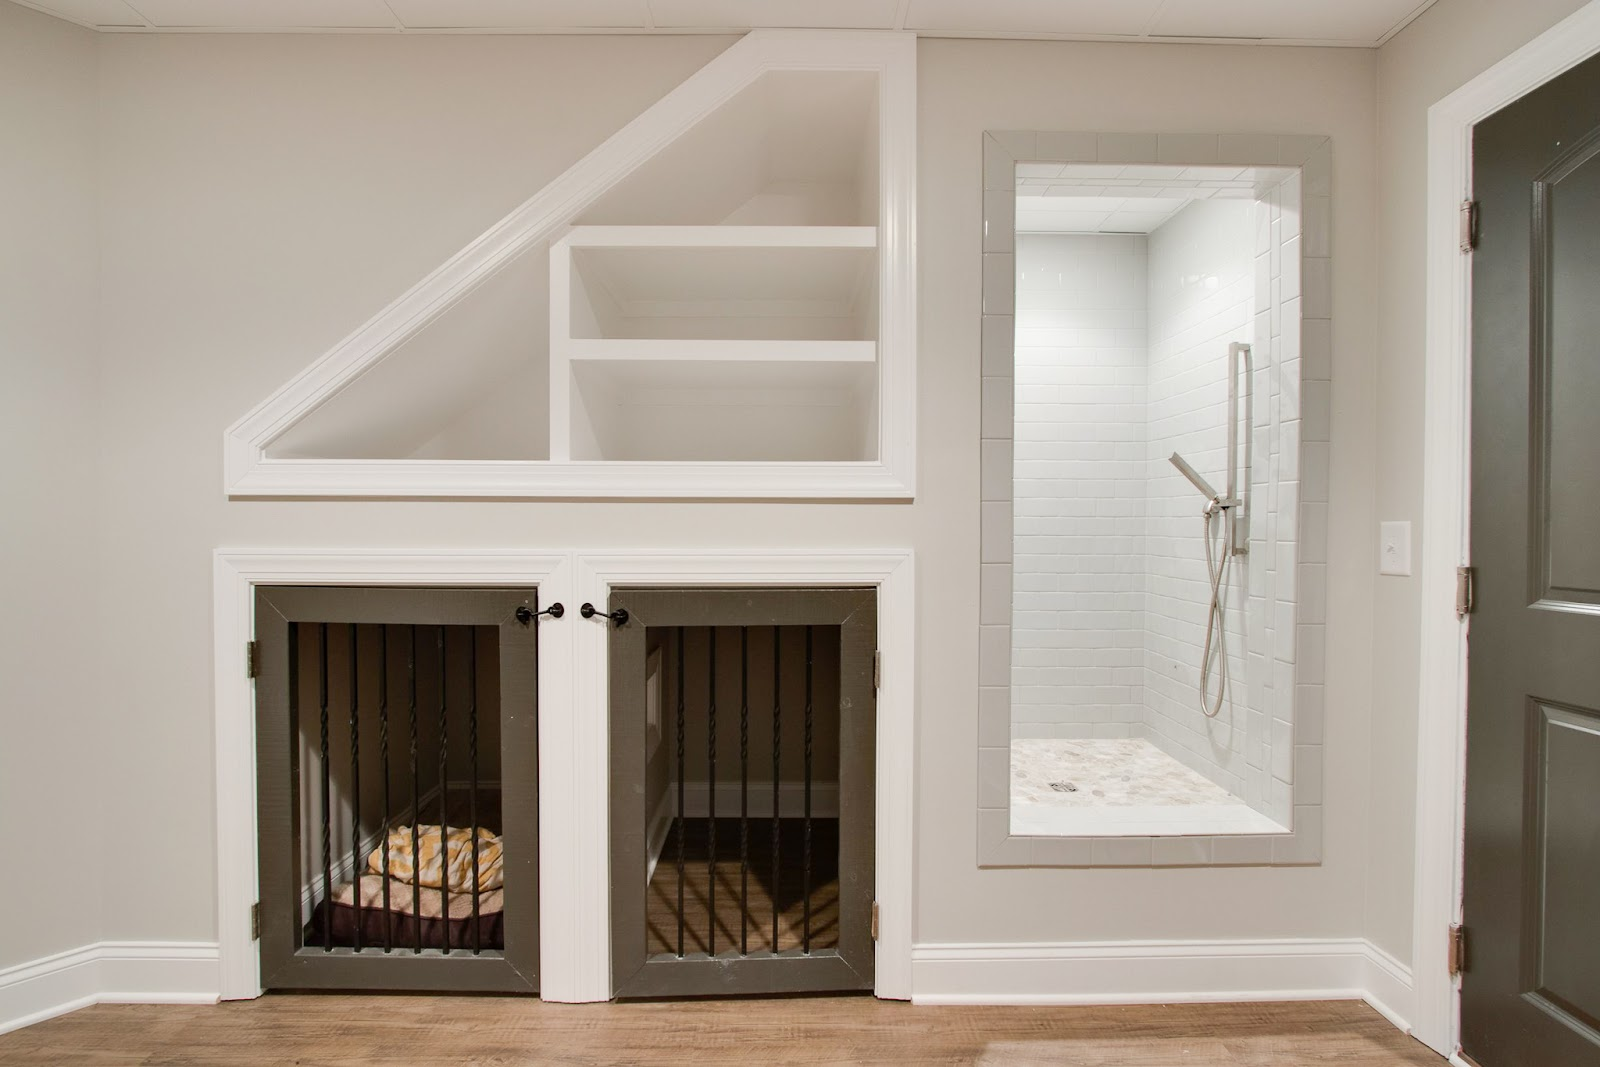 understairs two dog homes blankets dog wash shower builtin renovation superior construction and design